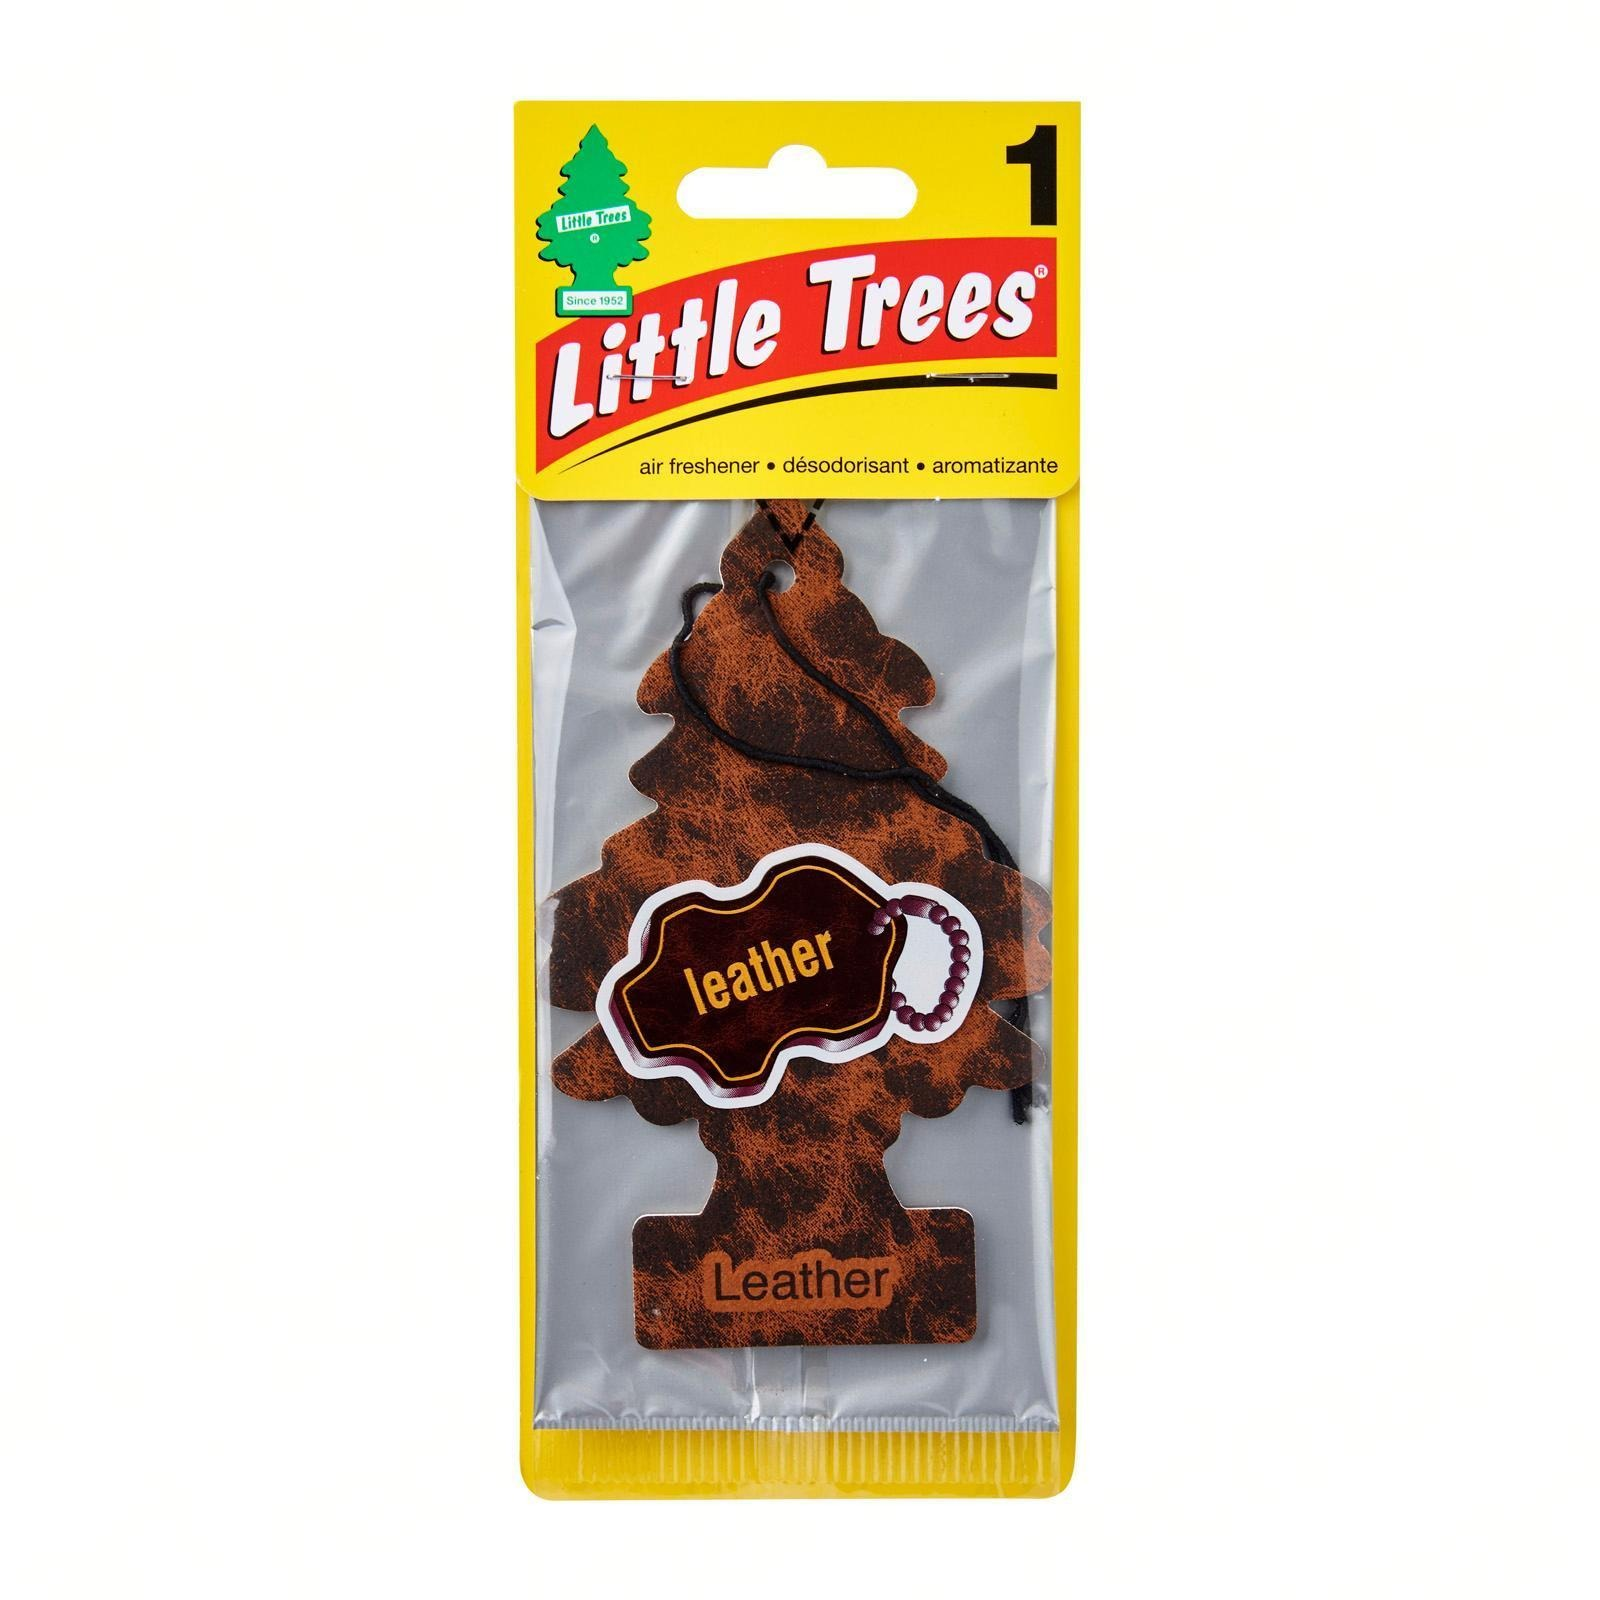 Little Trees Air Fresheners - Leather